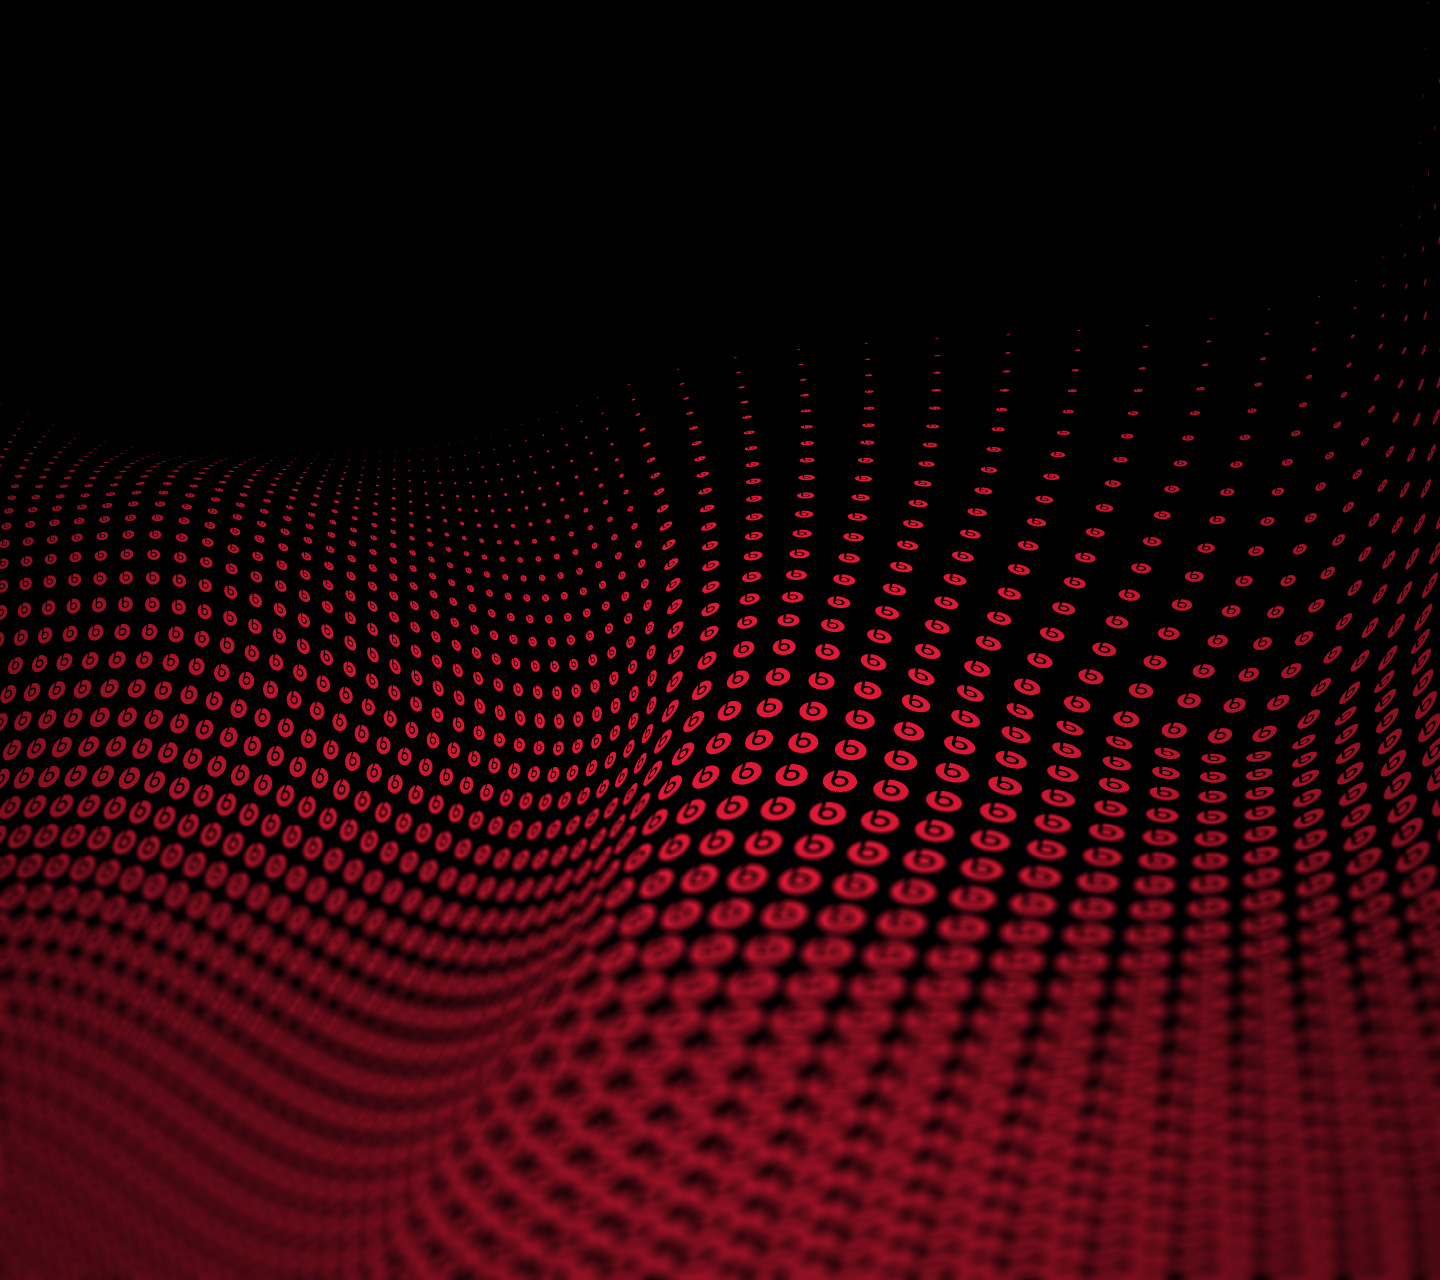 Htc Vigor Wallpapers Released  Beats Logo And 4g Lte All Over The Boot Animation  720p Screen